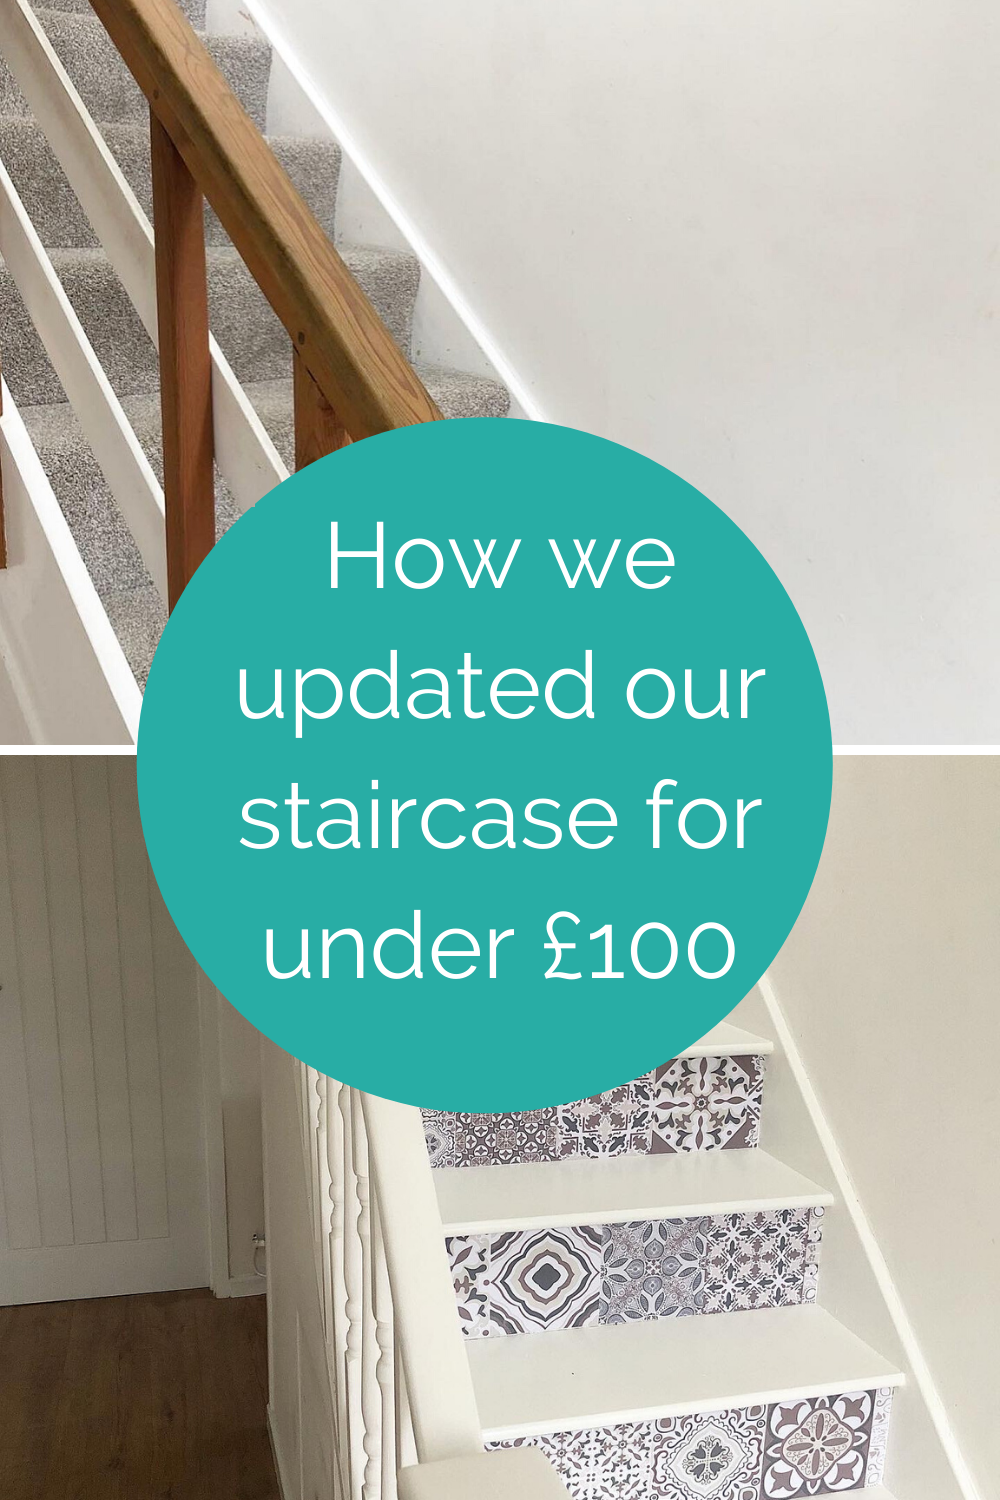 How we updated our staircase for under £100 (2)